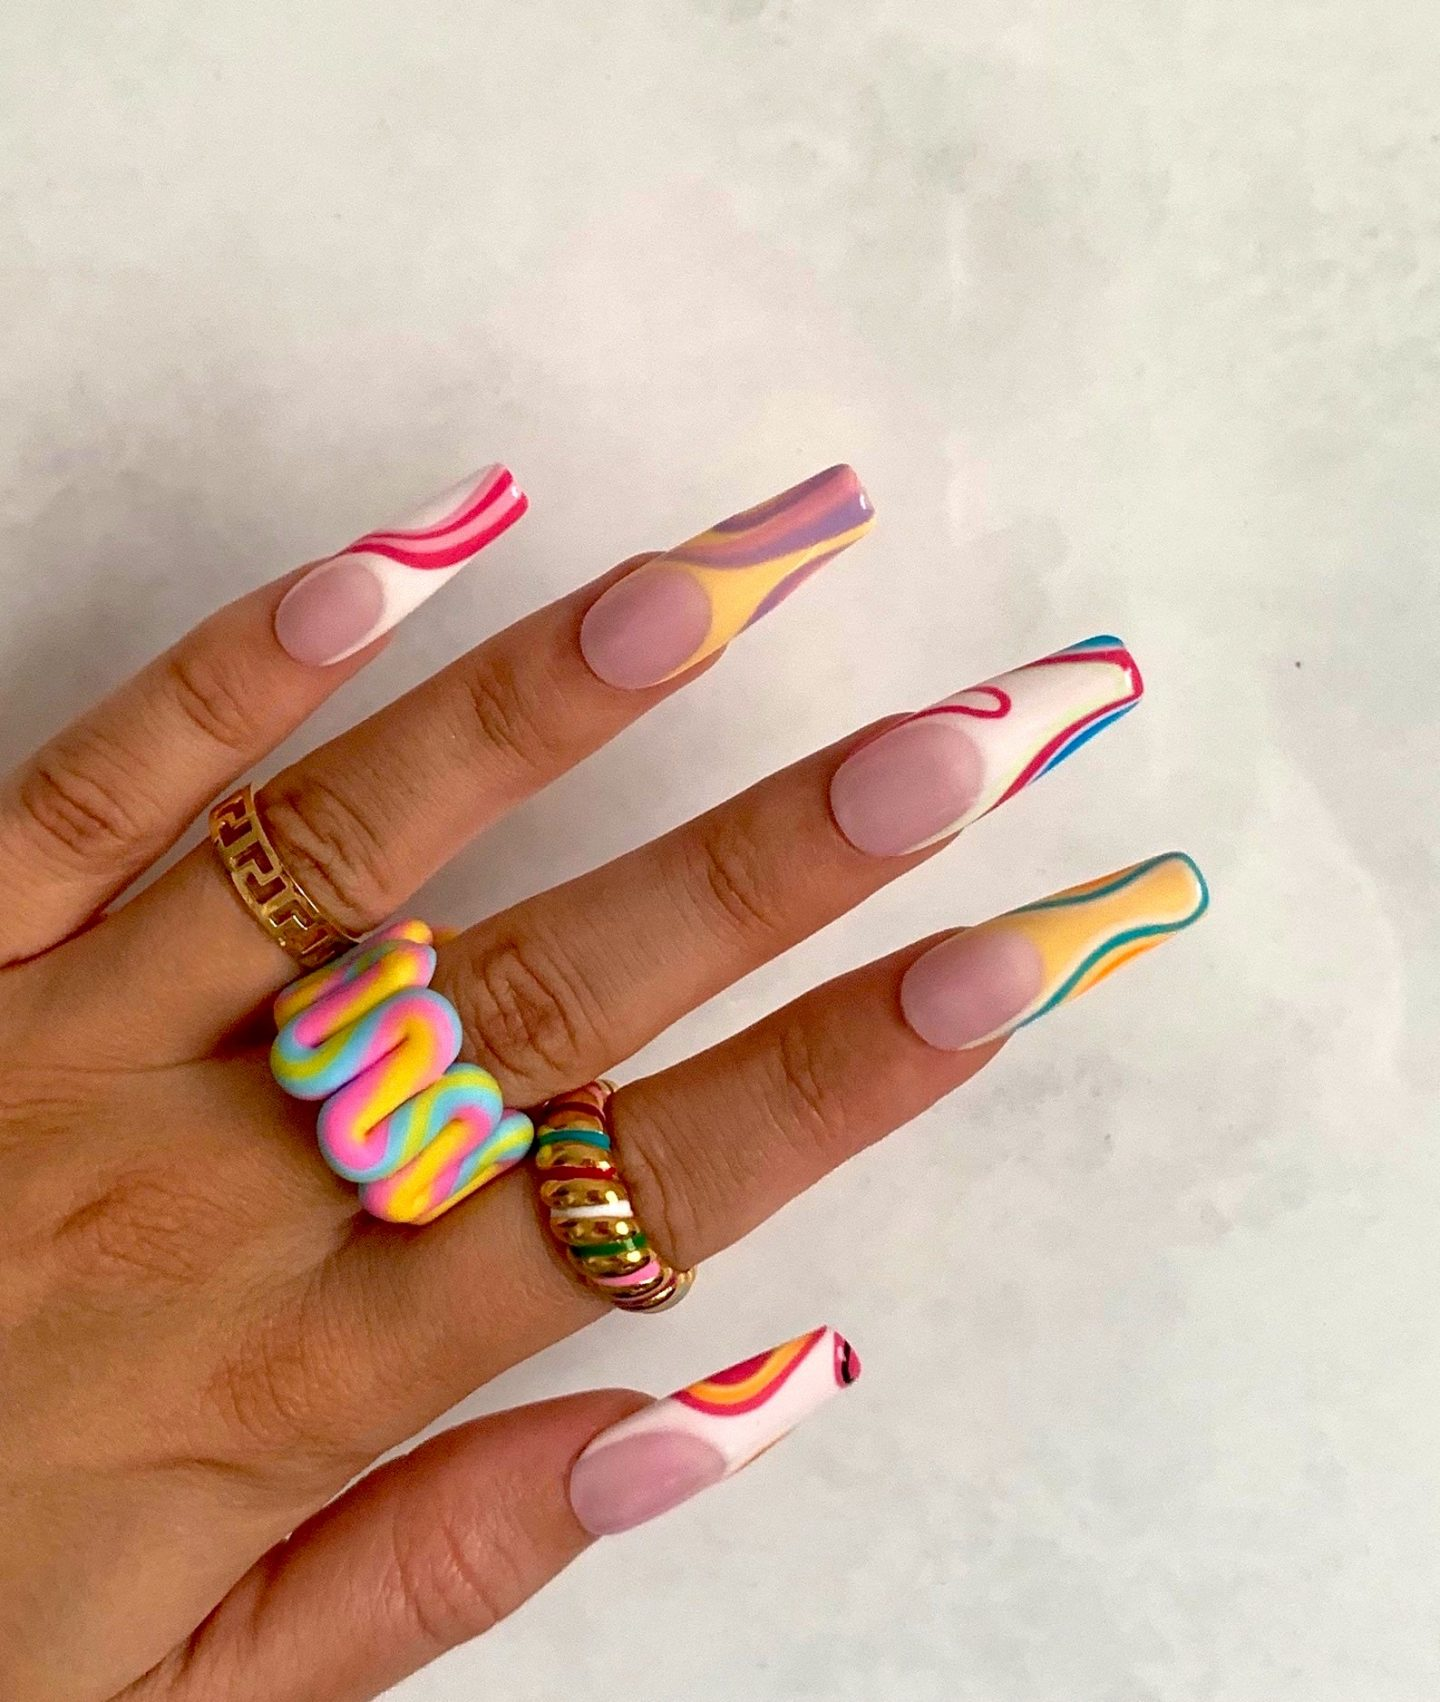 Cute colorful retro nails with lines and French tips